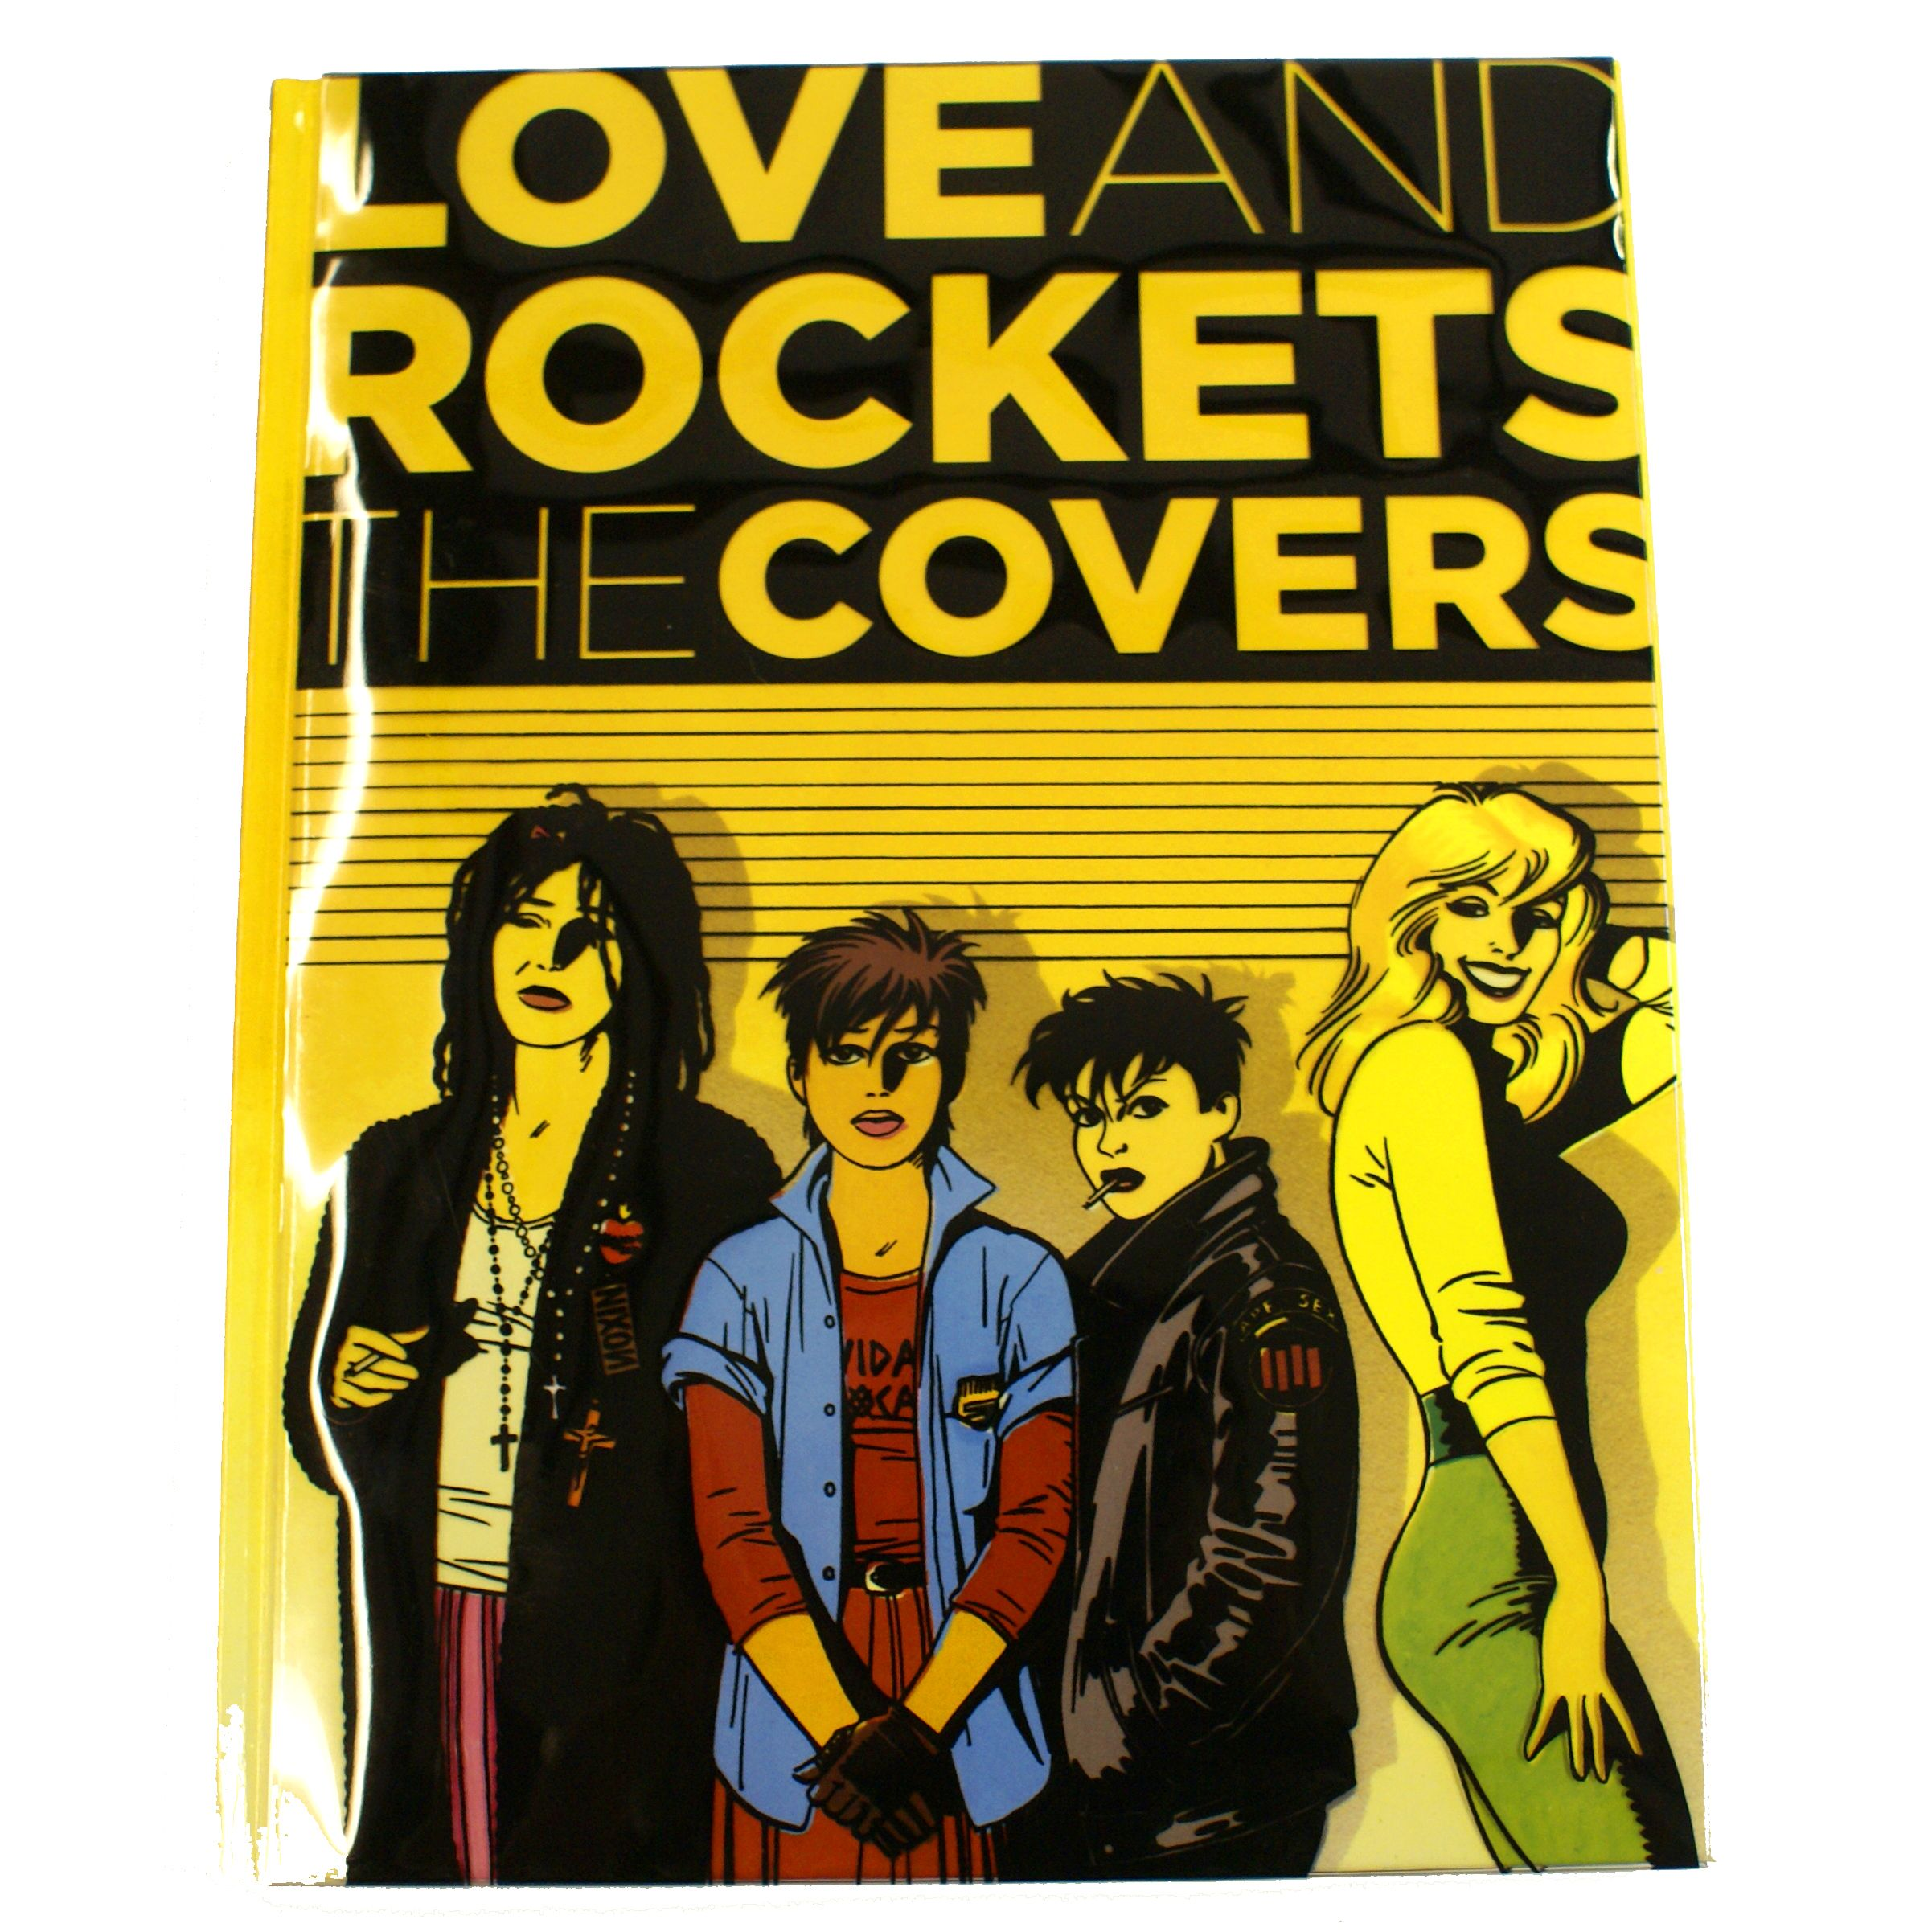 Love and Rockets The Covers produced for Fantagraphics includes all the original covers from the comic book series.  A transparent PVC sleeve is wrapped around the front cover and provides the black element of the illustration behind it.